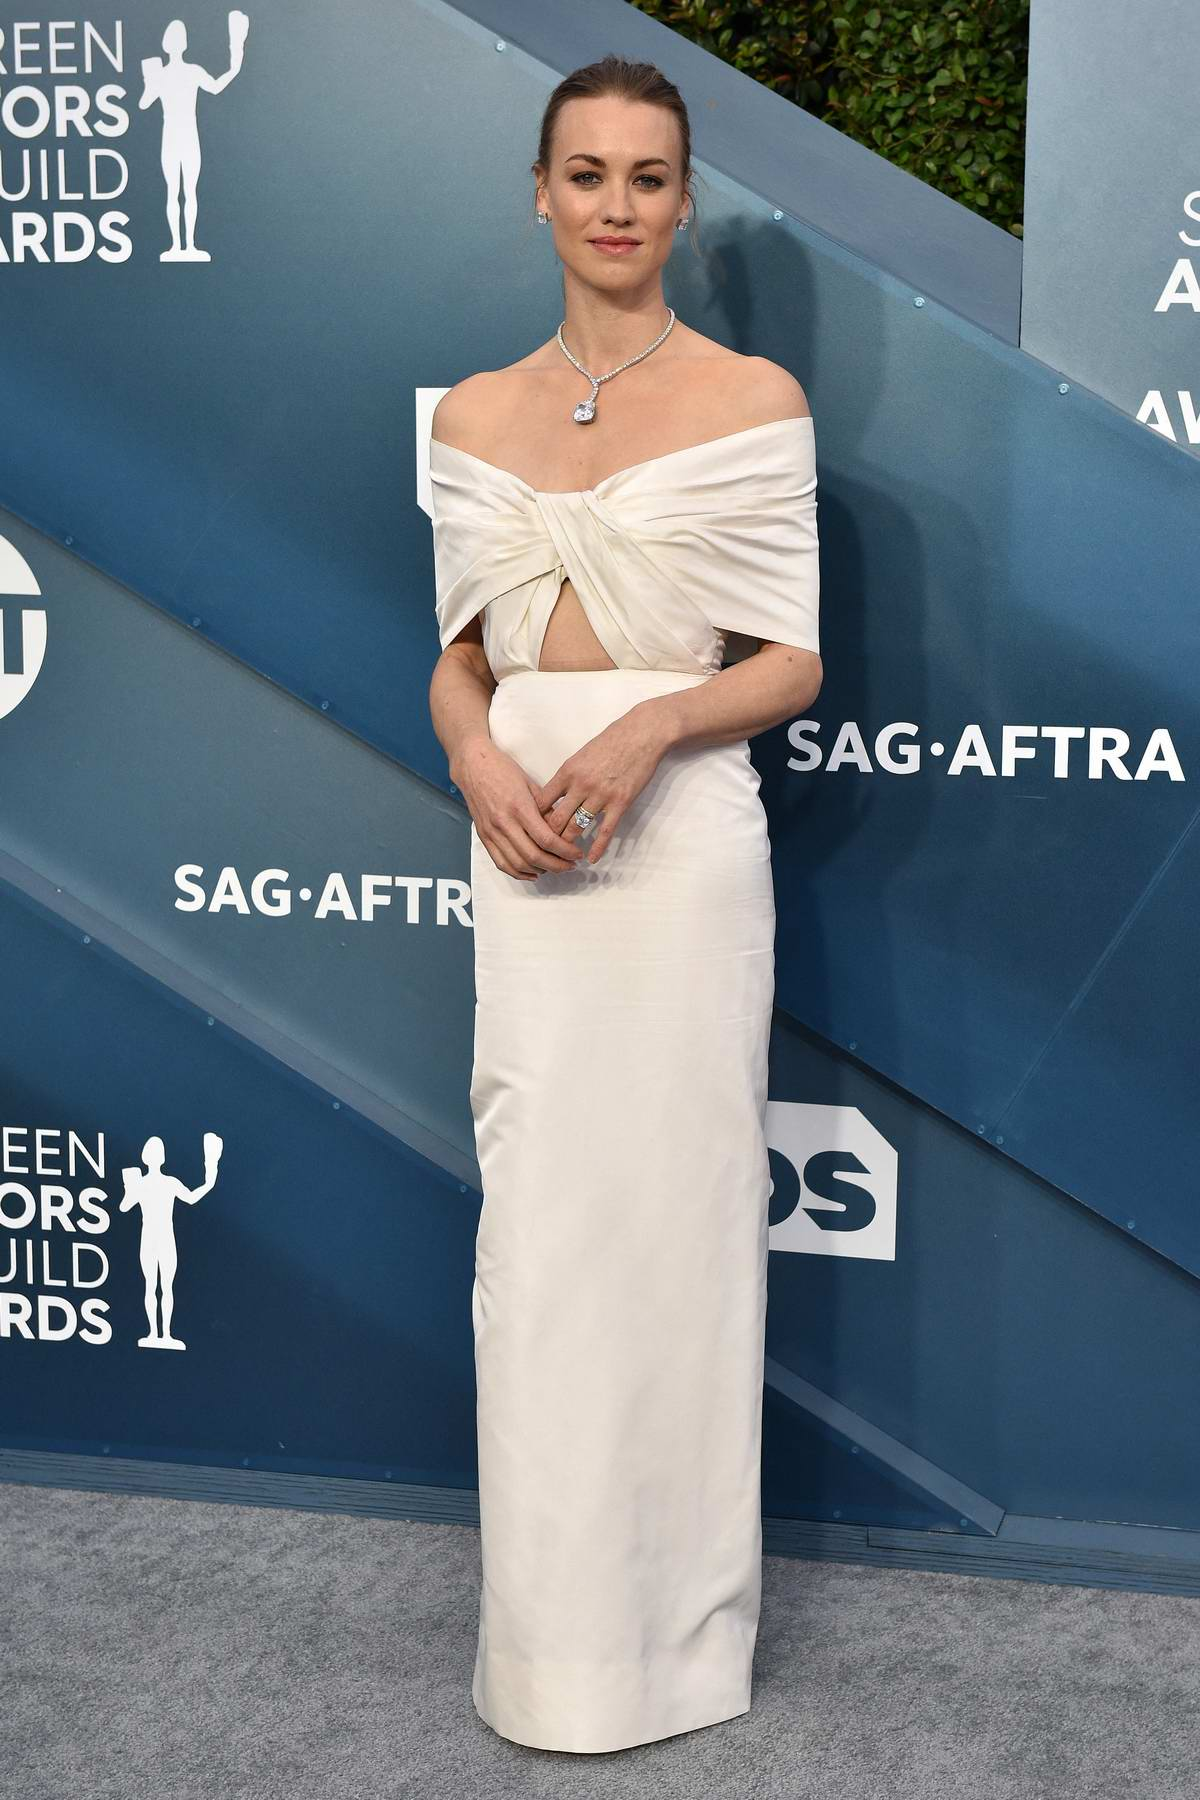 Yvonne Strahovski attends the 26th Annual Screen Actors Guild Awards at the Shrine Auditorium in Los Angeles